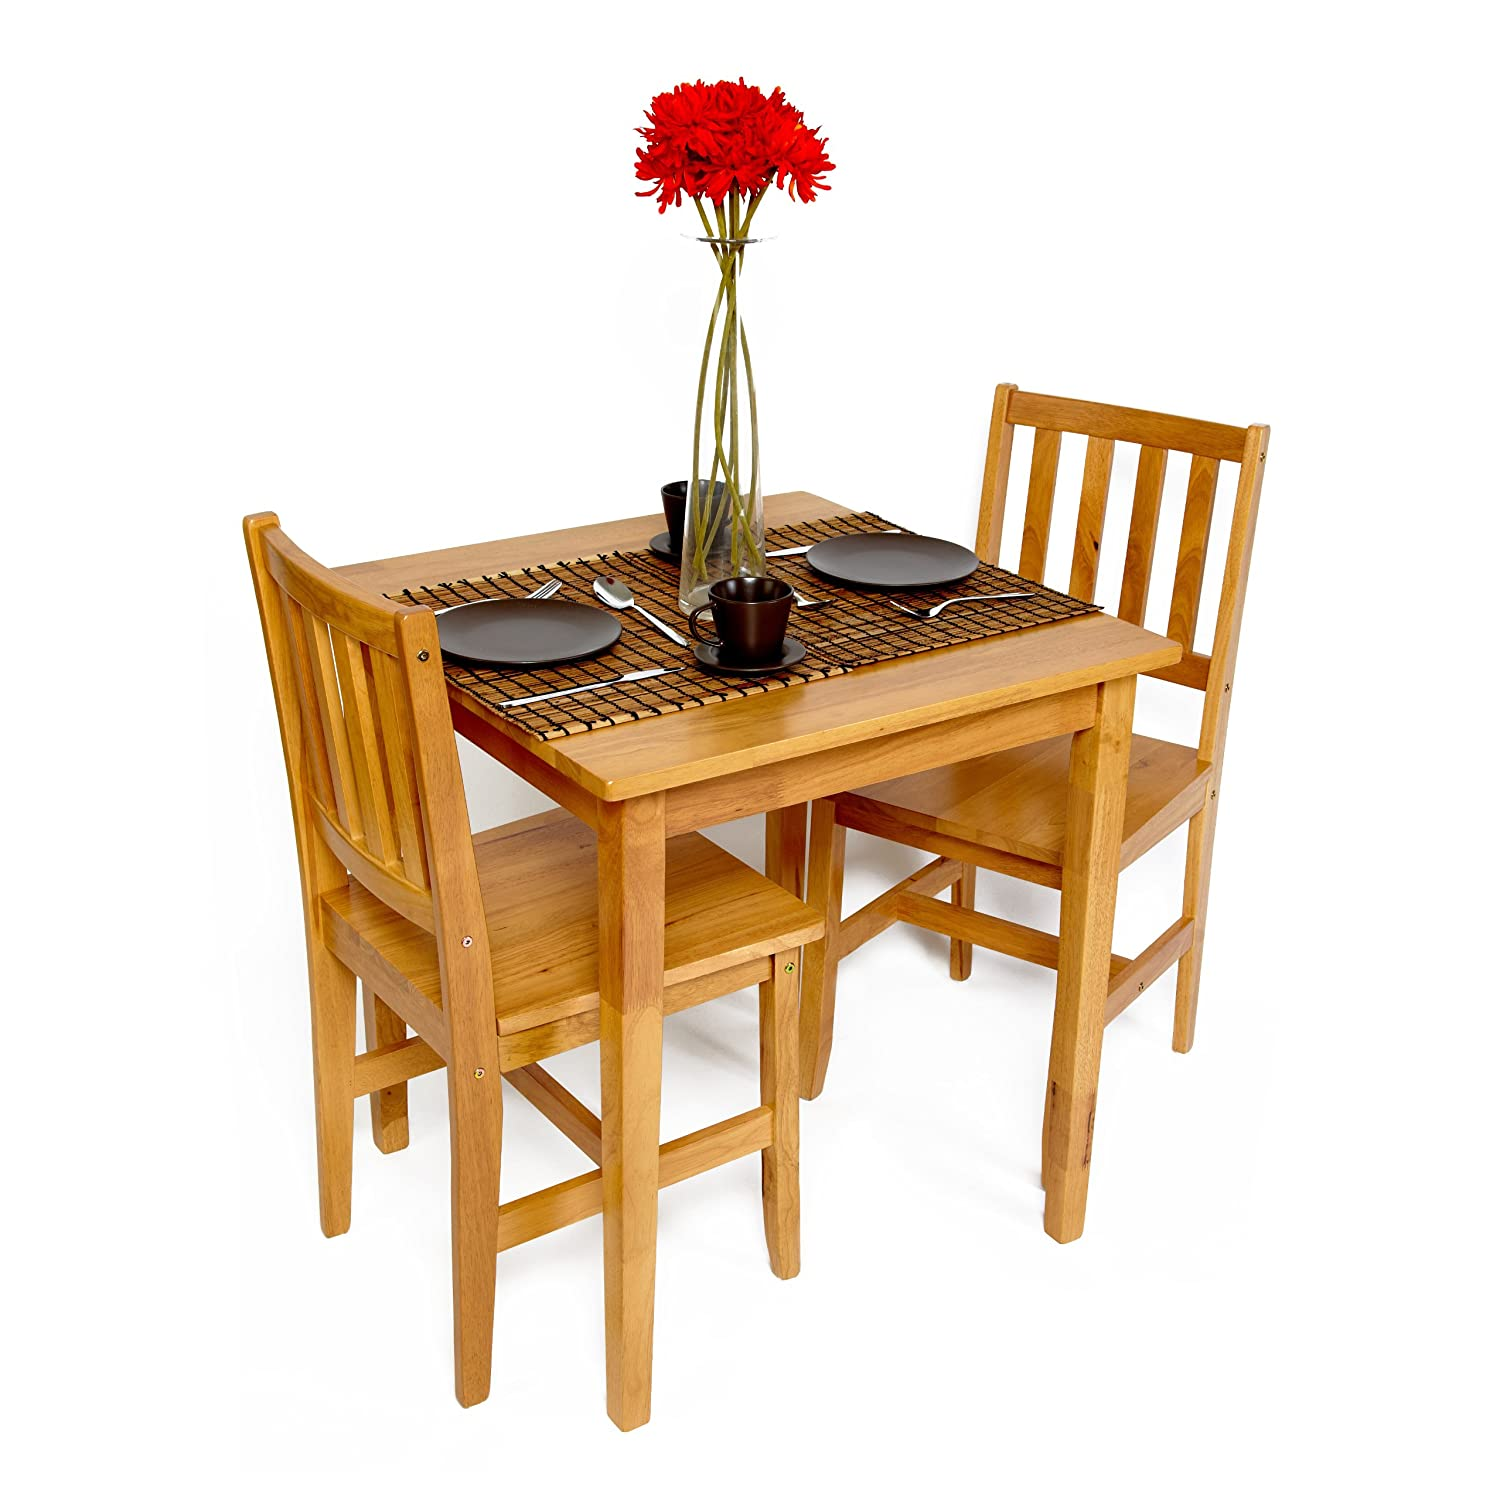 Table and chairs set dining bistro small cafe tables wood wooden 2 chair kitchen Wooden dining table and chairs